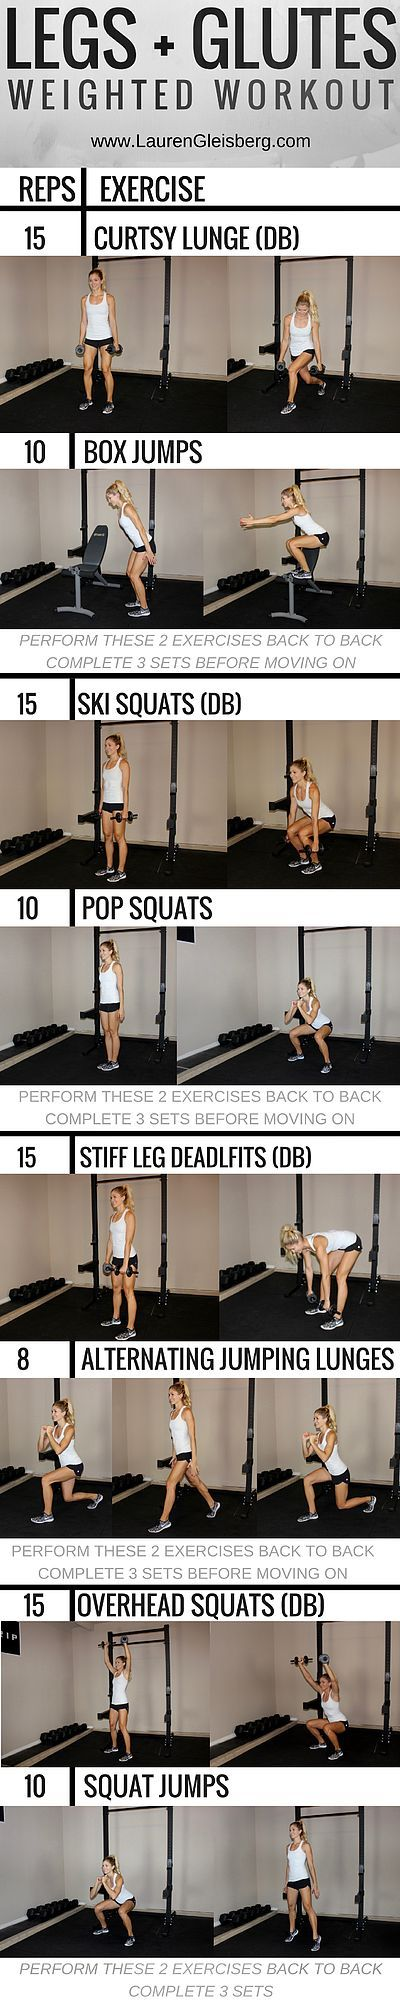 WORKOUT OF THE DAY: LOWER BODY CIRCUIT